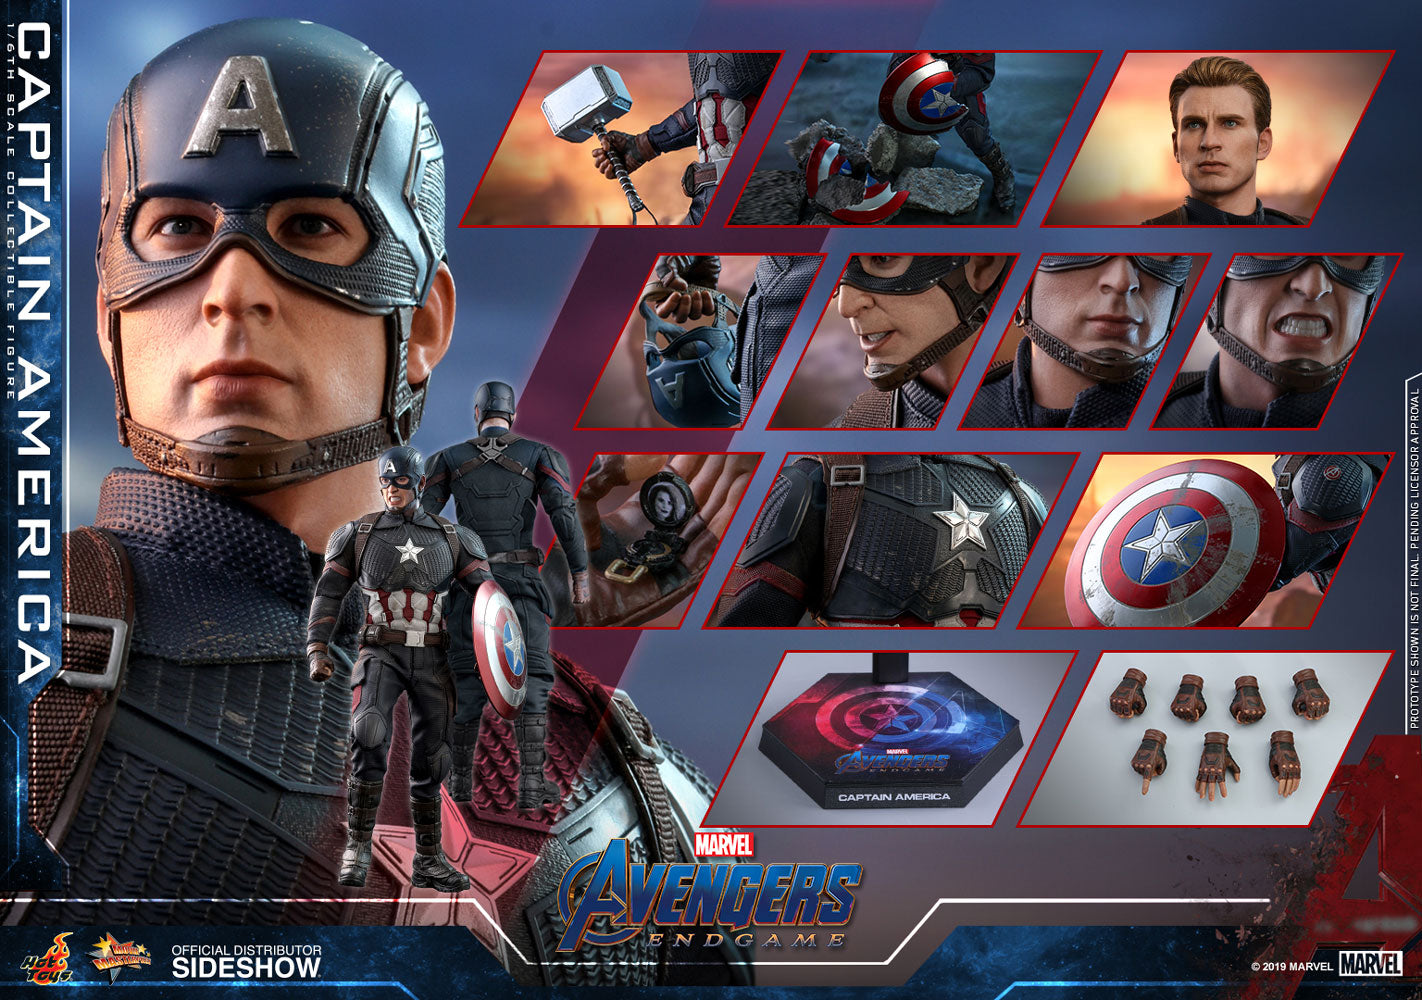 Hot Toys Captain America Marvel Avengers: Endgame Sixth Scale Figure - Collectors Row Inc.